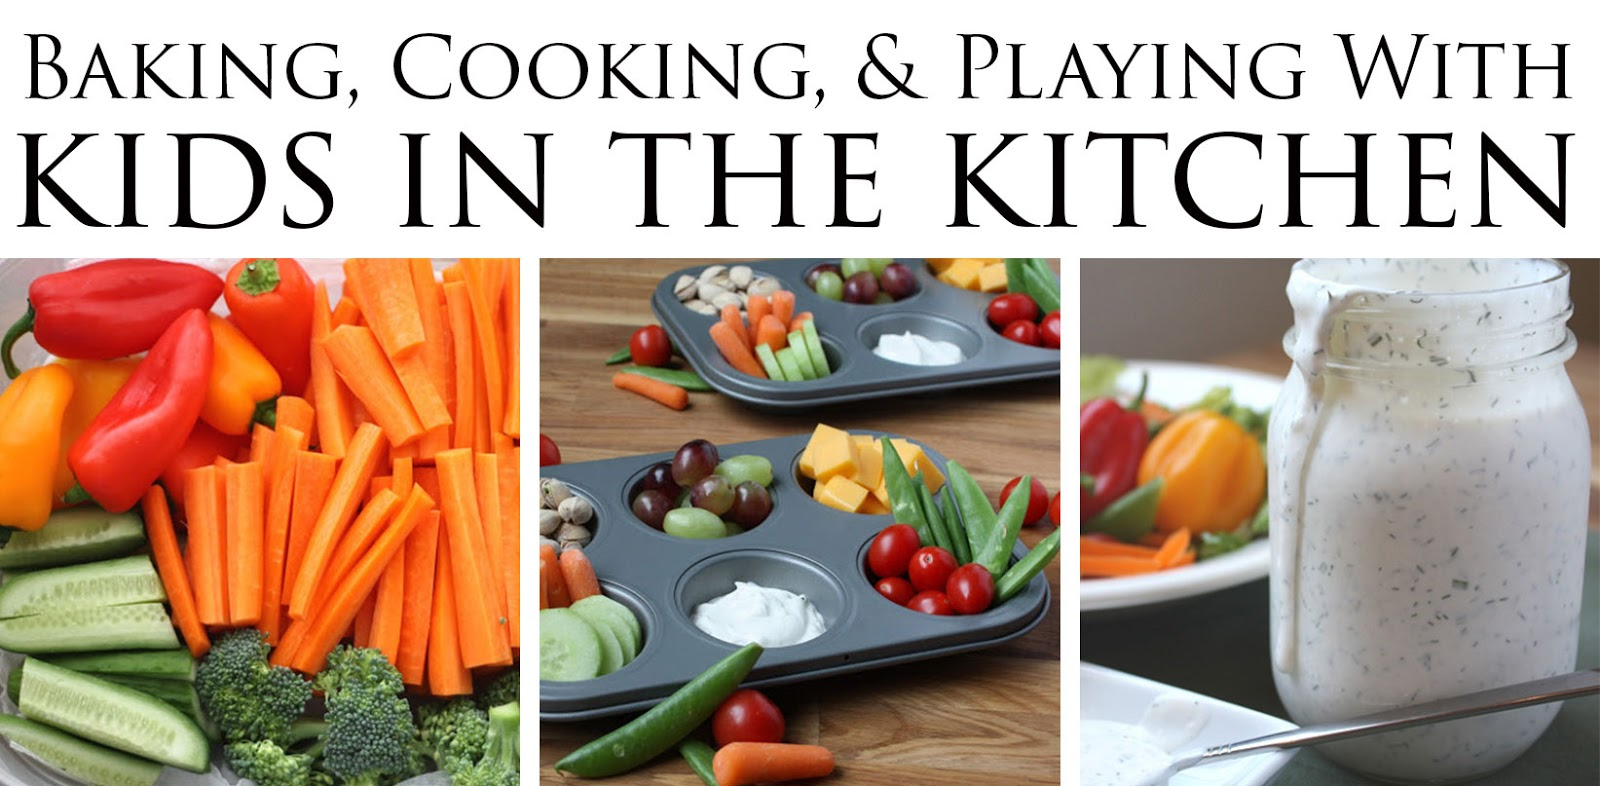 Recipes for baking, cooking, and playing with kids in the kitchen!